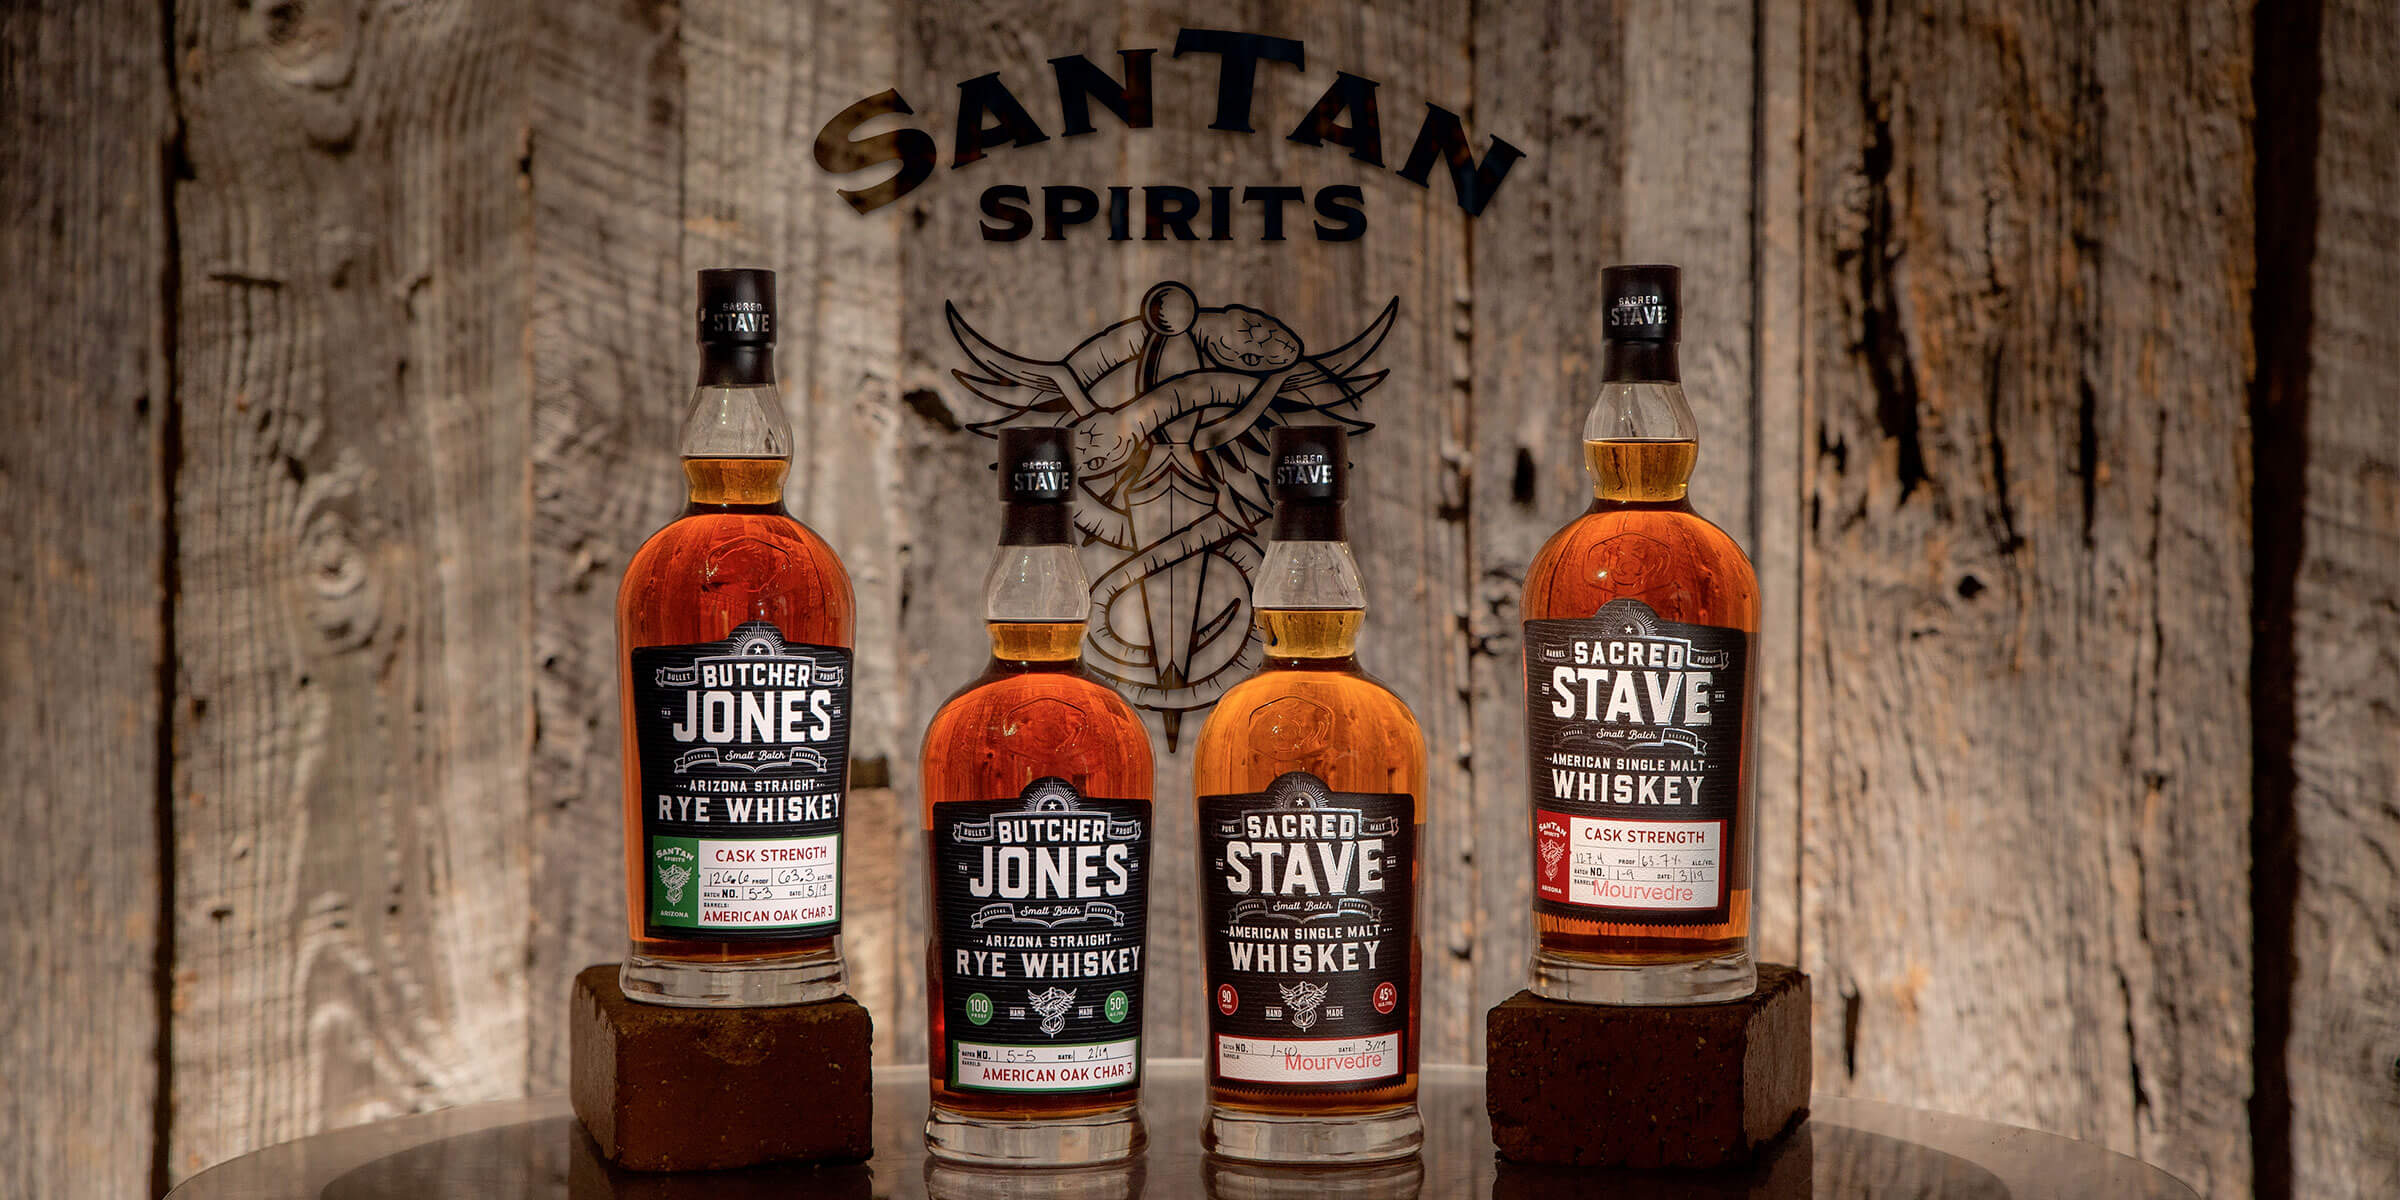 A quartet of 750 ml bottles of whiskey by SanTan Spirits, a product of SanTan Brewing Company